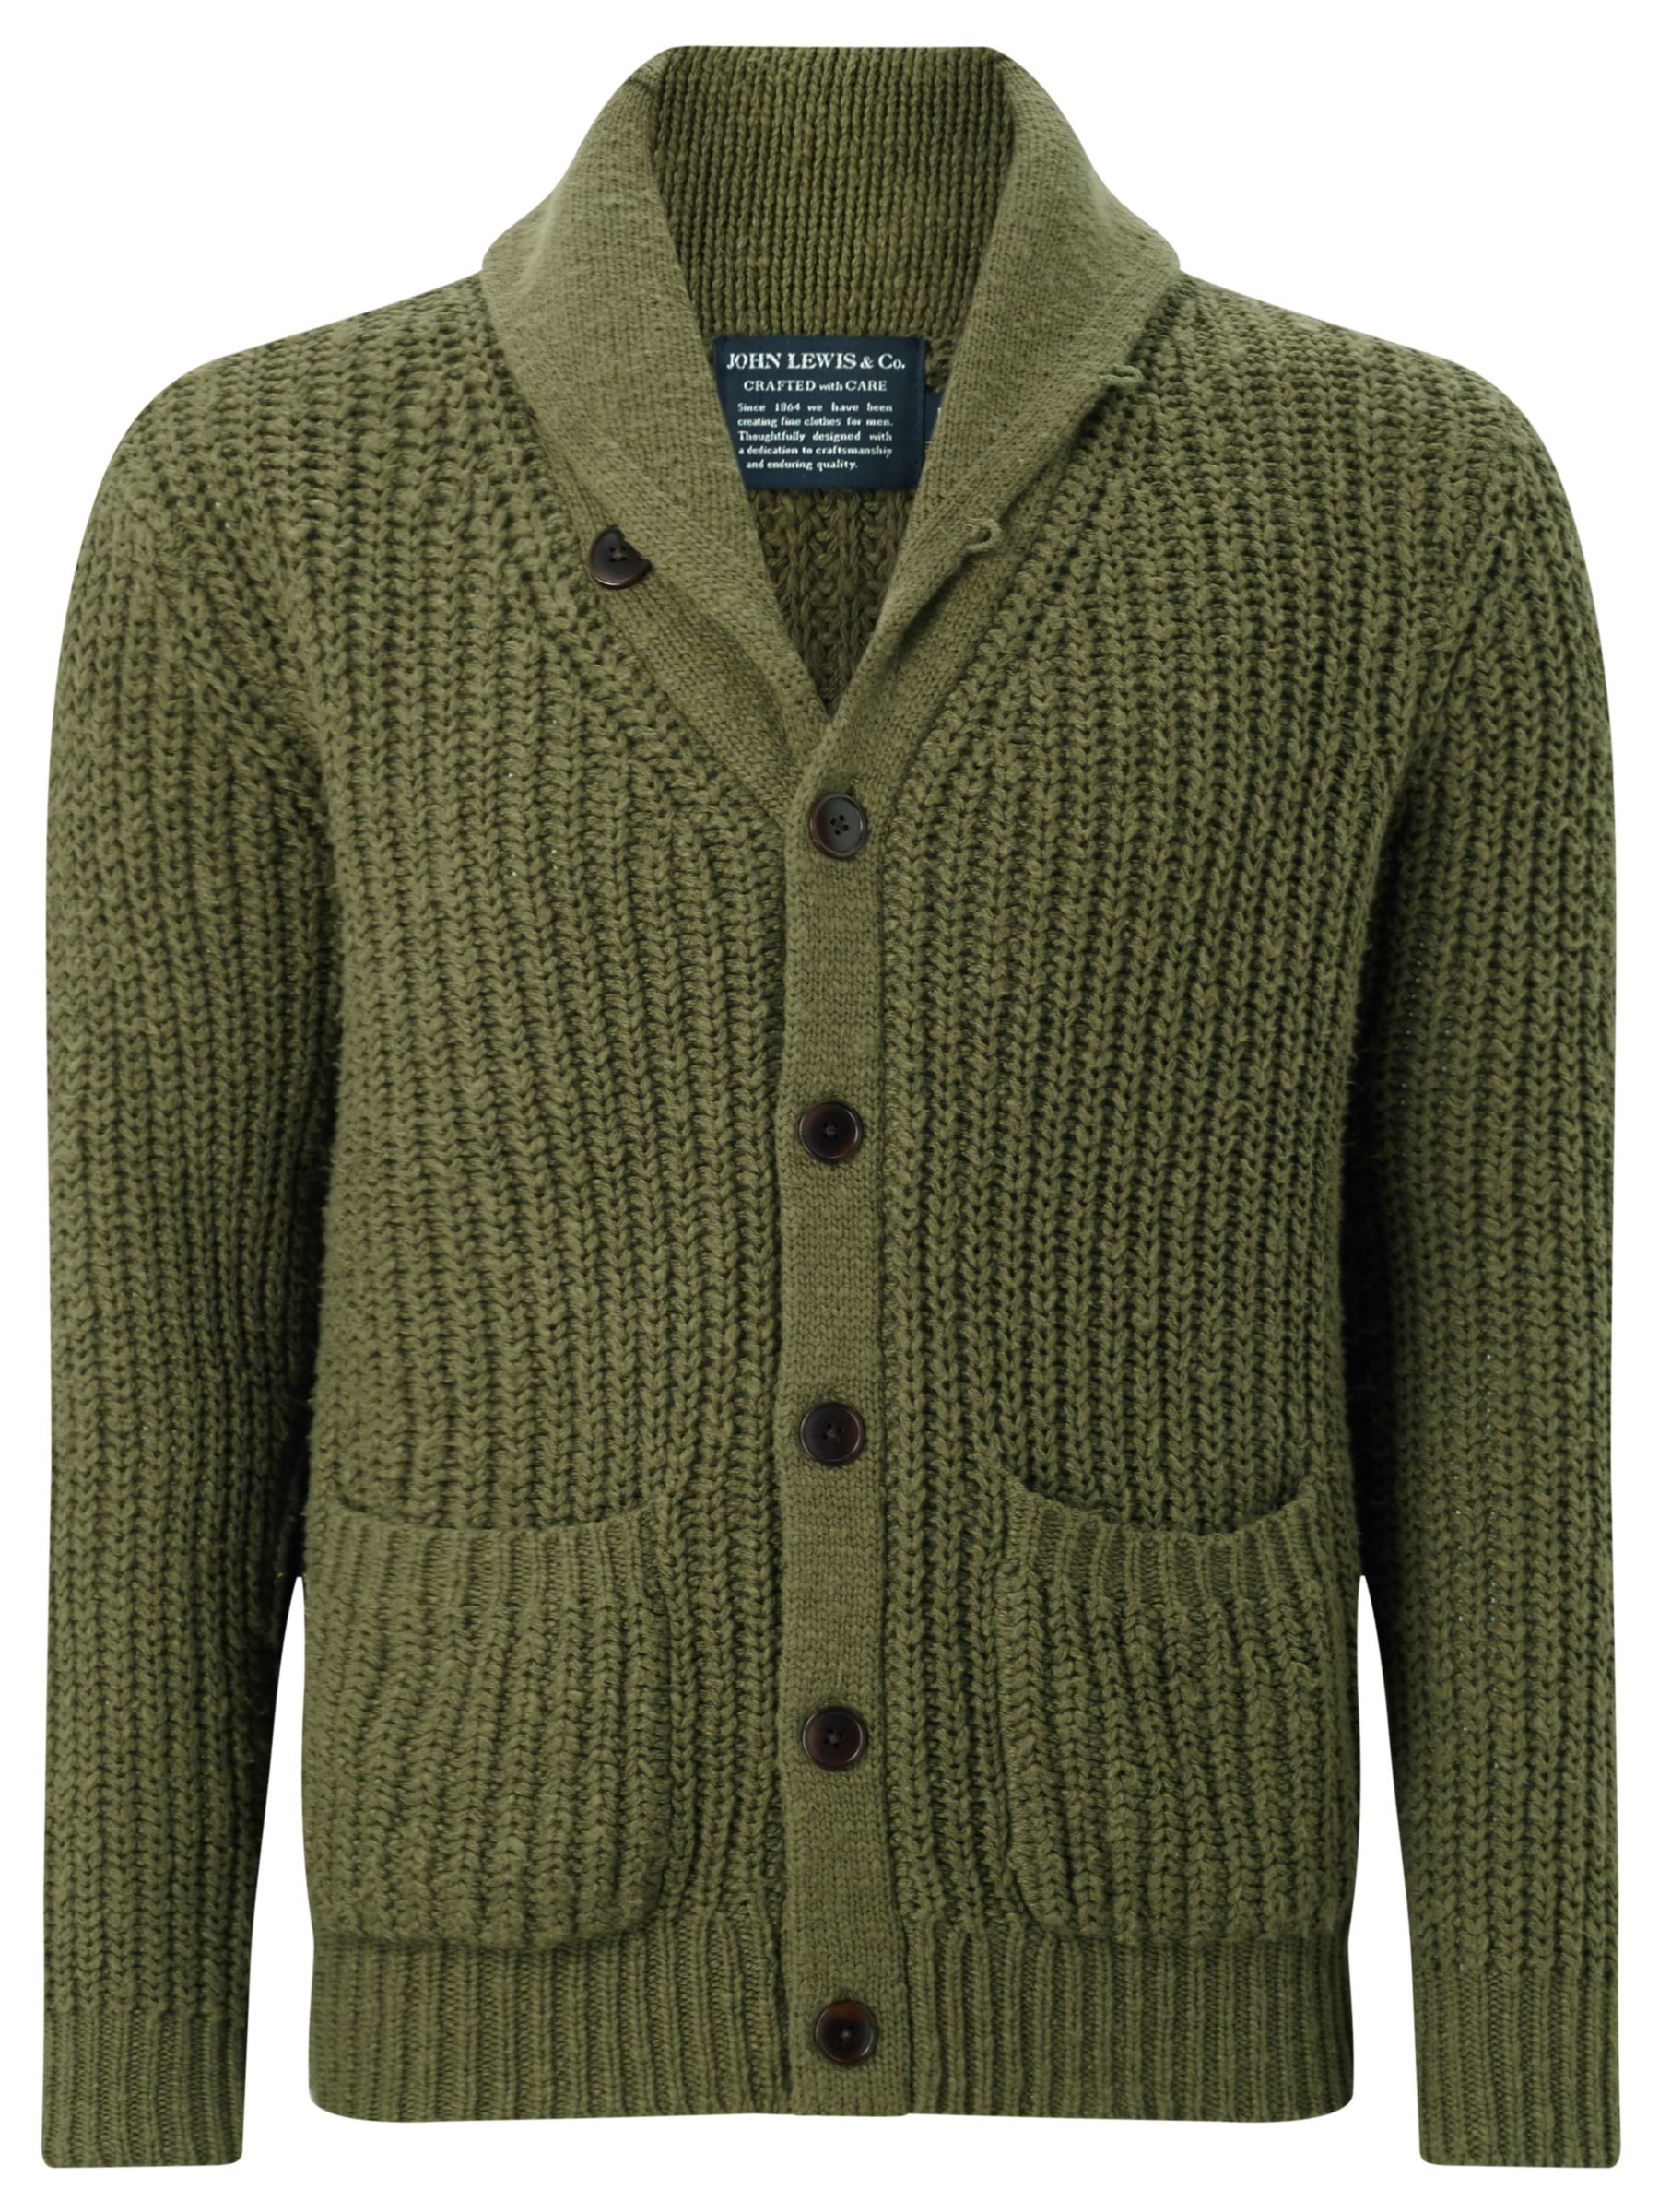 JOHN LEWIS & Co. Slub Cotton Shawl Neck Cardigan, Khaki at